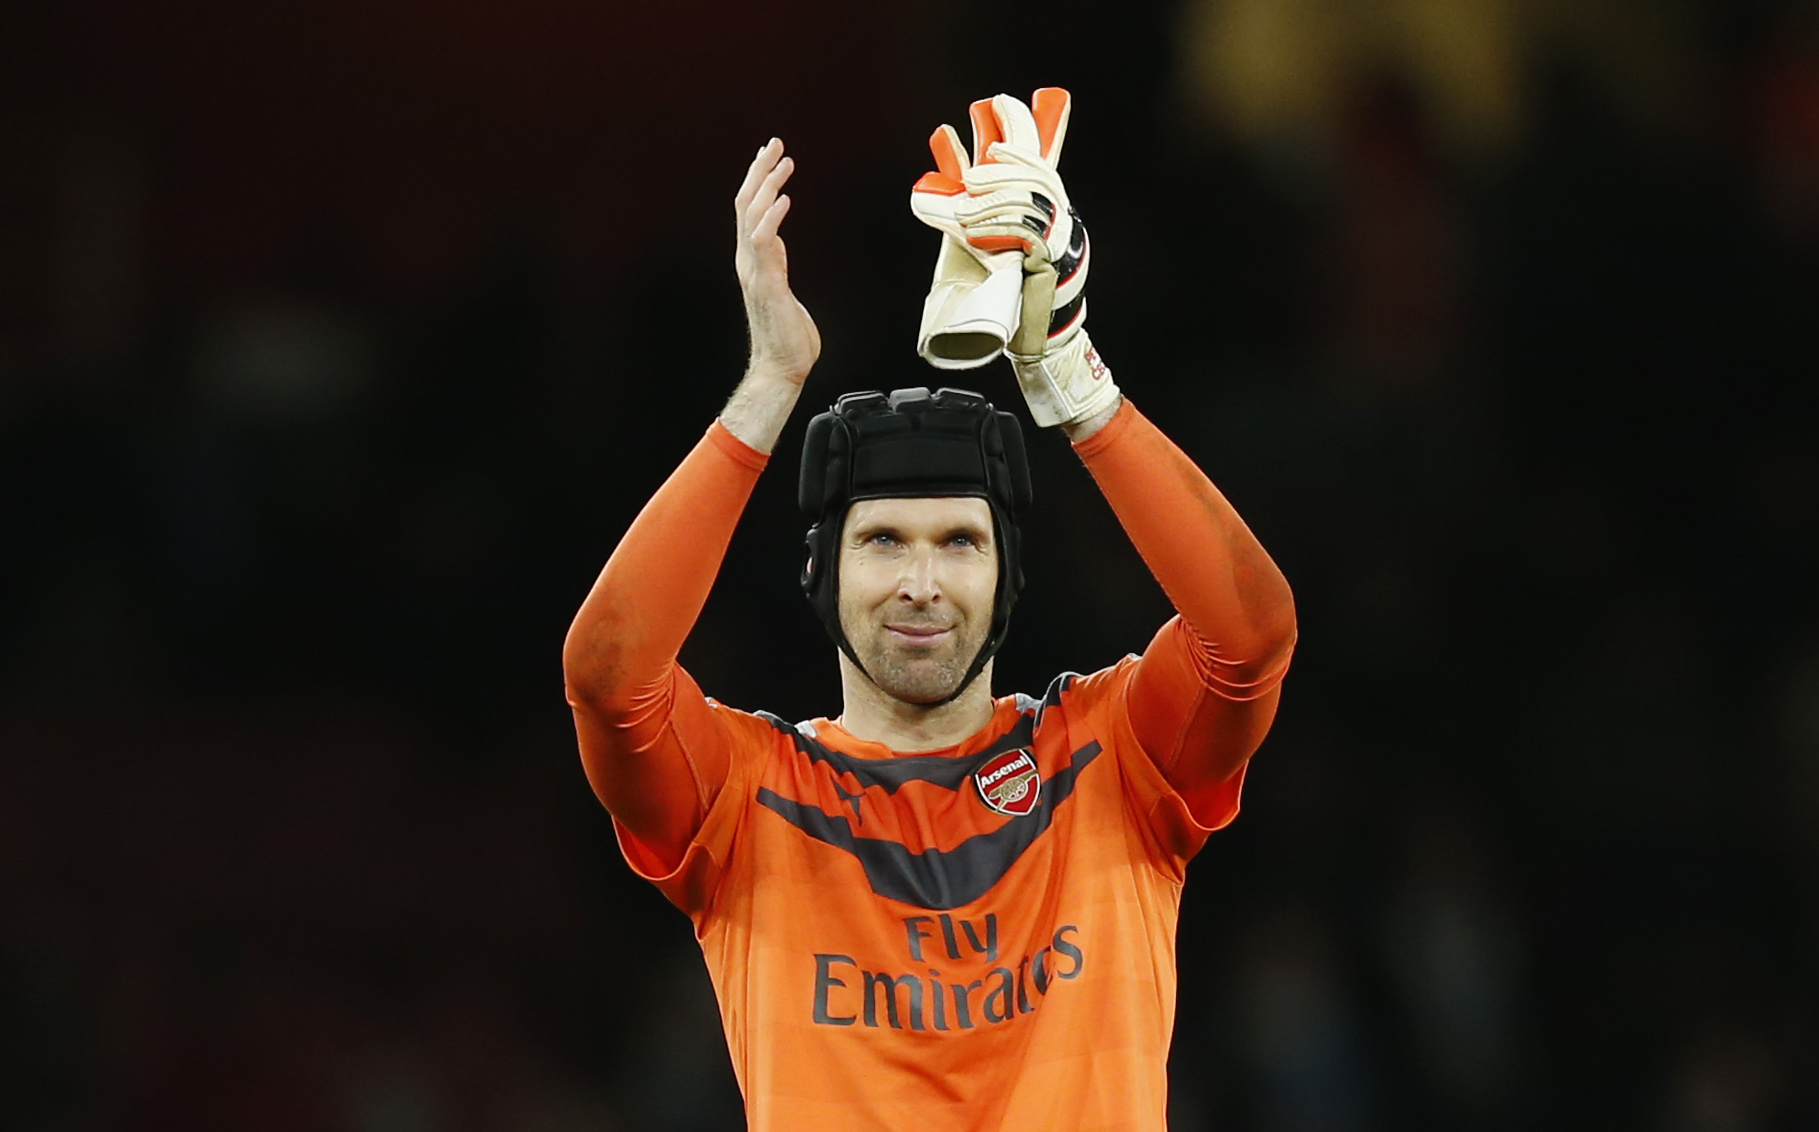 Arsenal's Petr Cech applauds the fans after the game against Manchester City at Emirates Stadium on Monday, December 21, 2015. Photo: Reuters